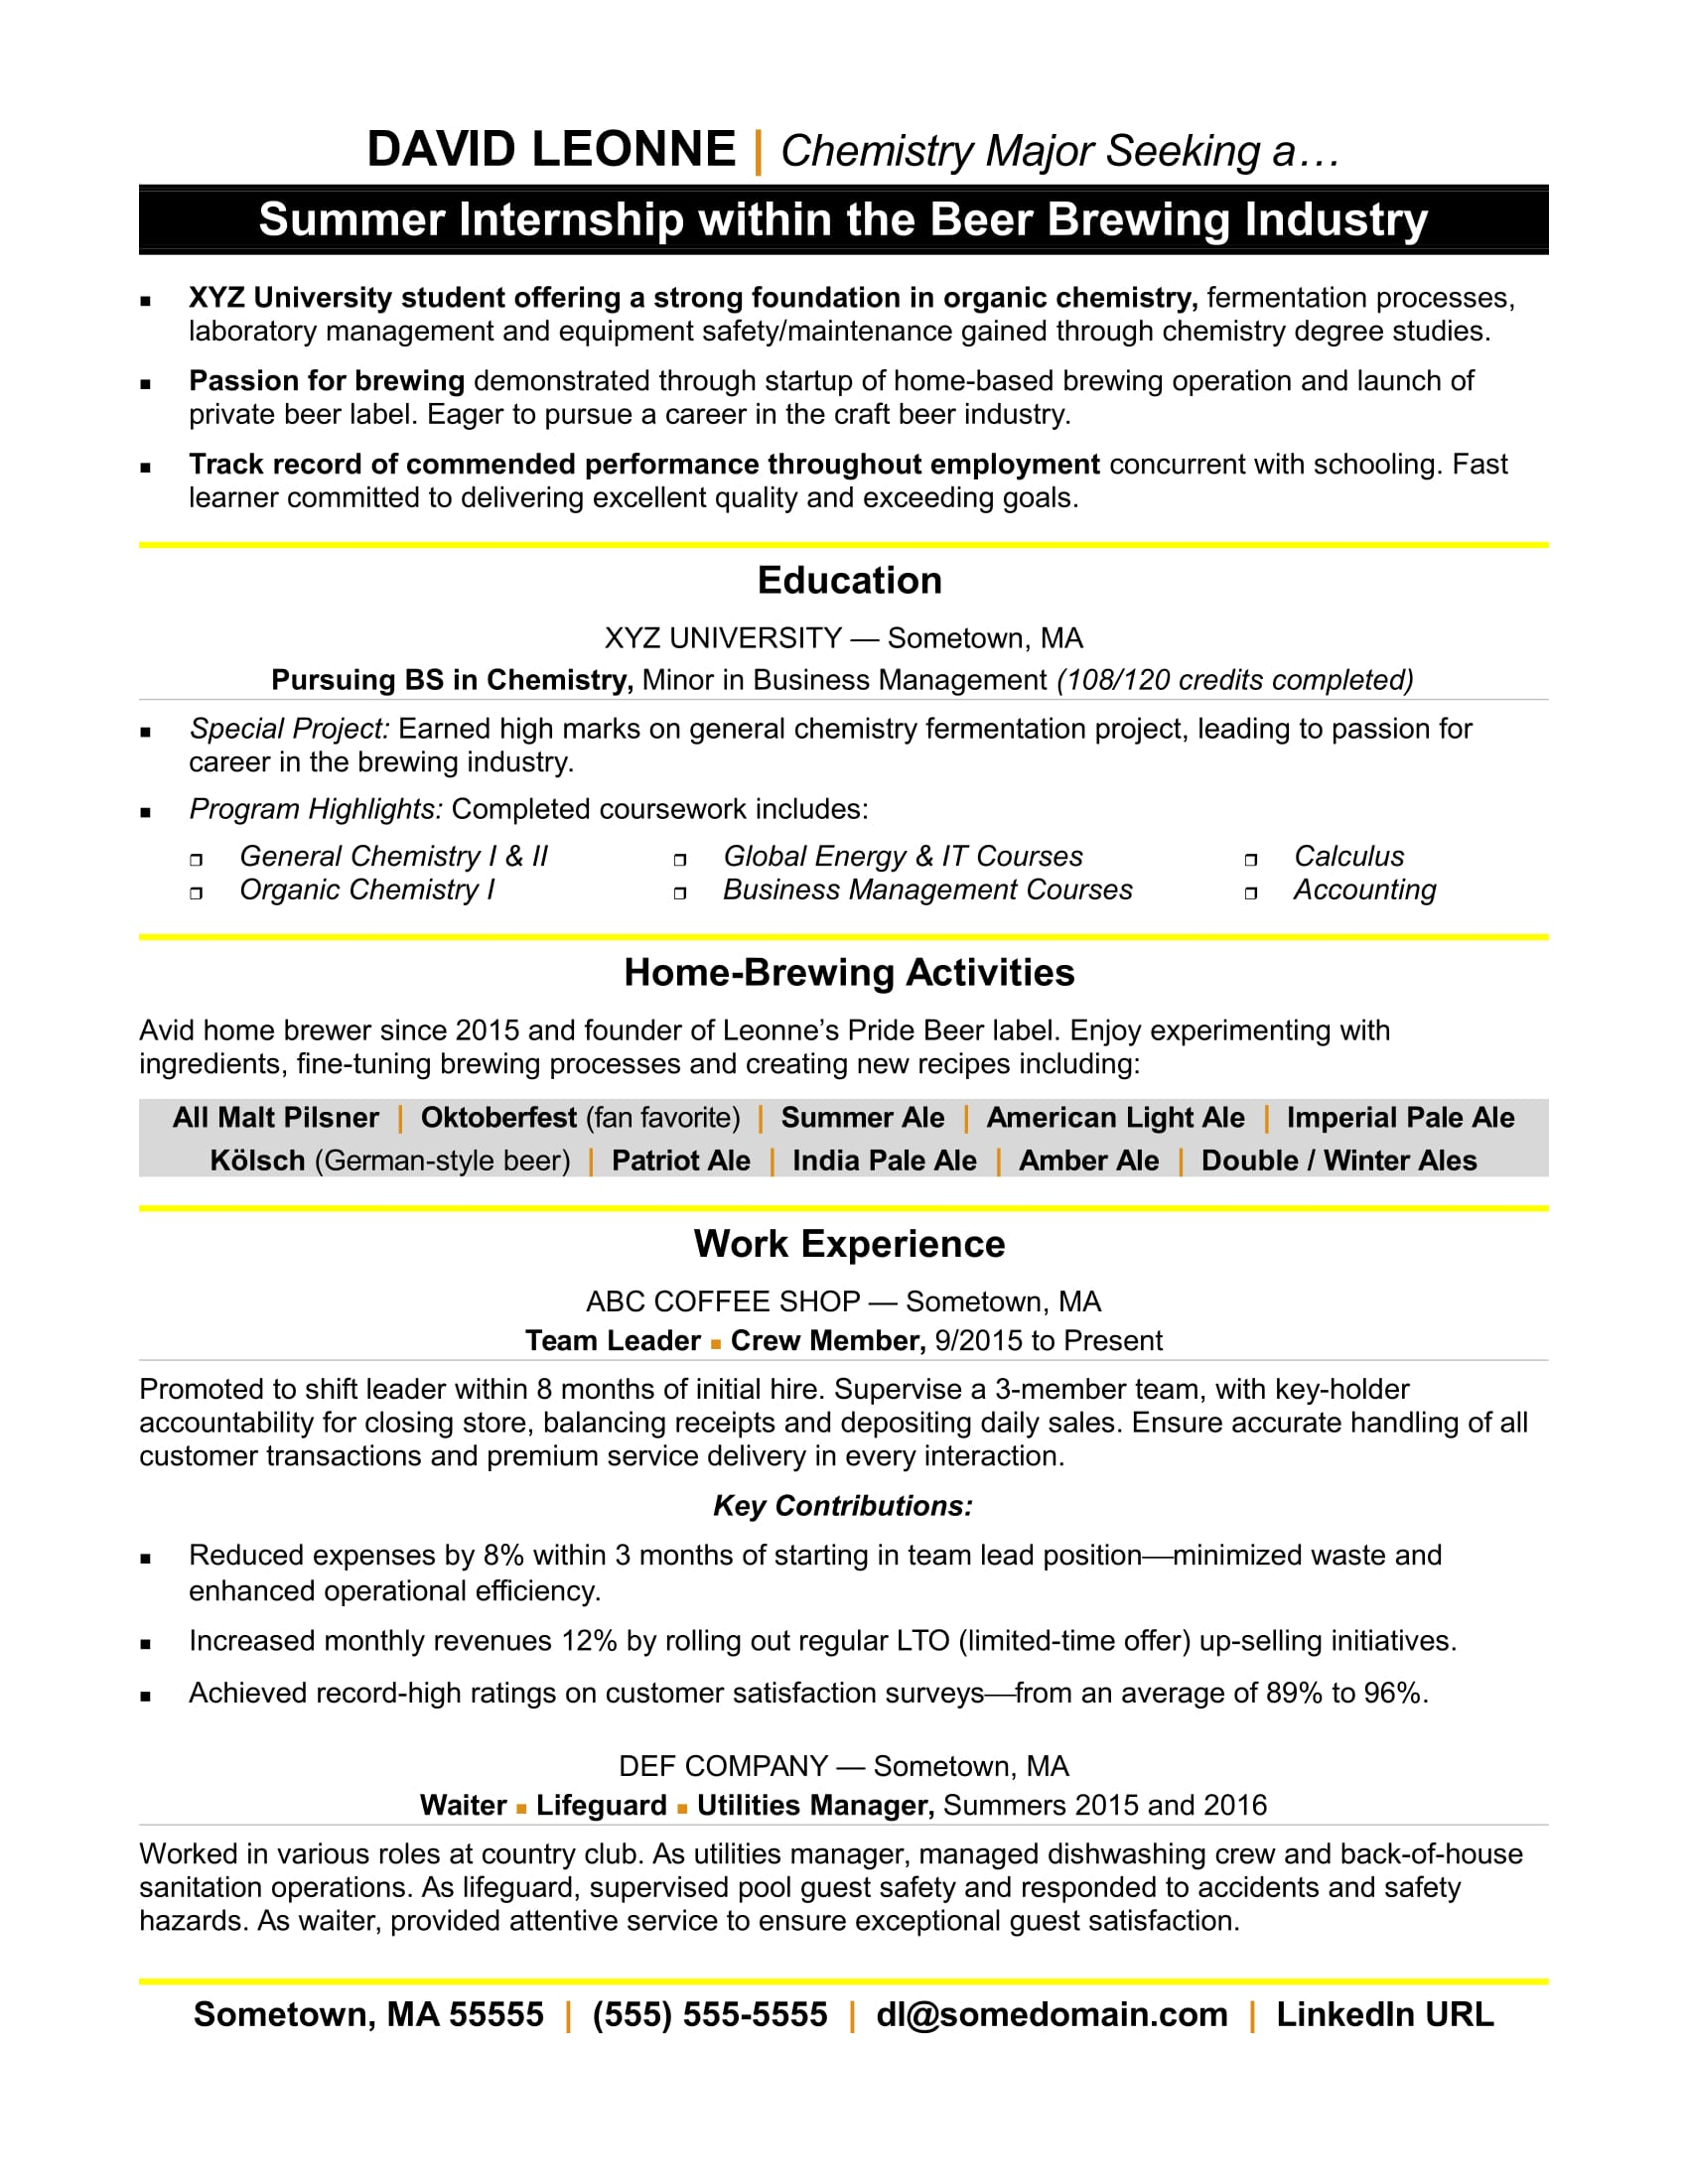 resume for internship monster work experience examples description teacher billing high Resume Resume Work Experience Examples